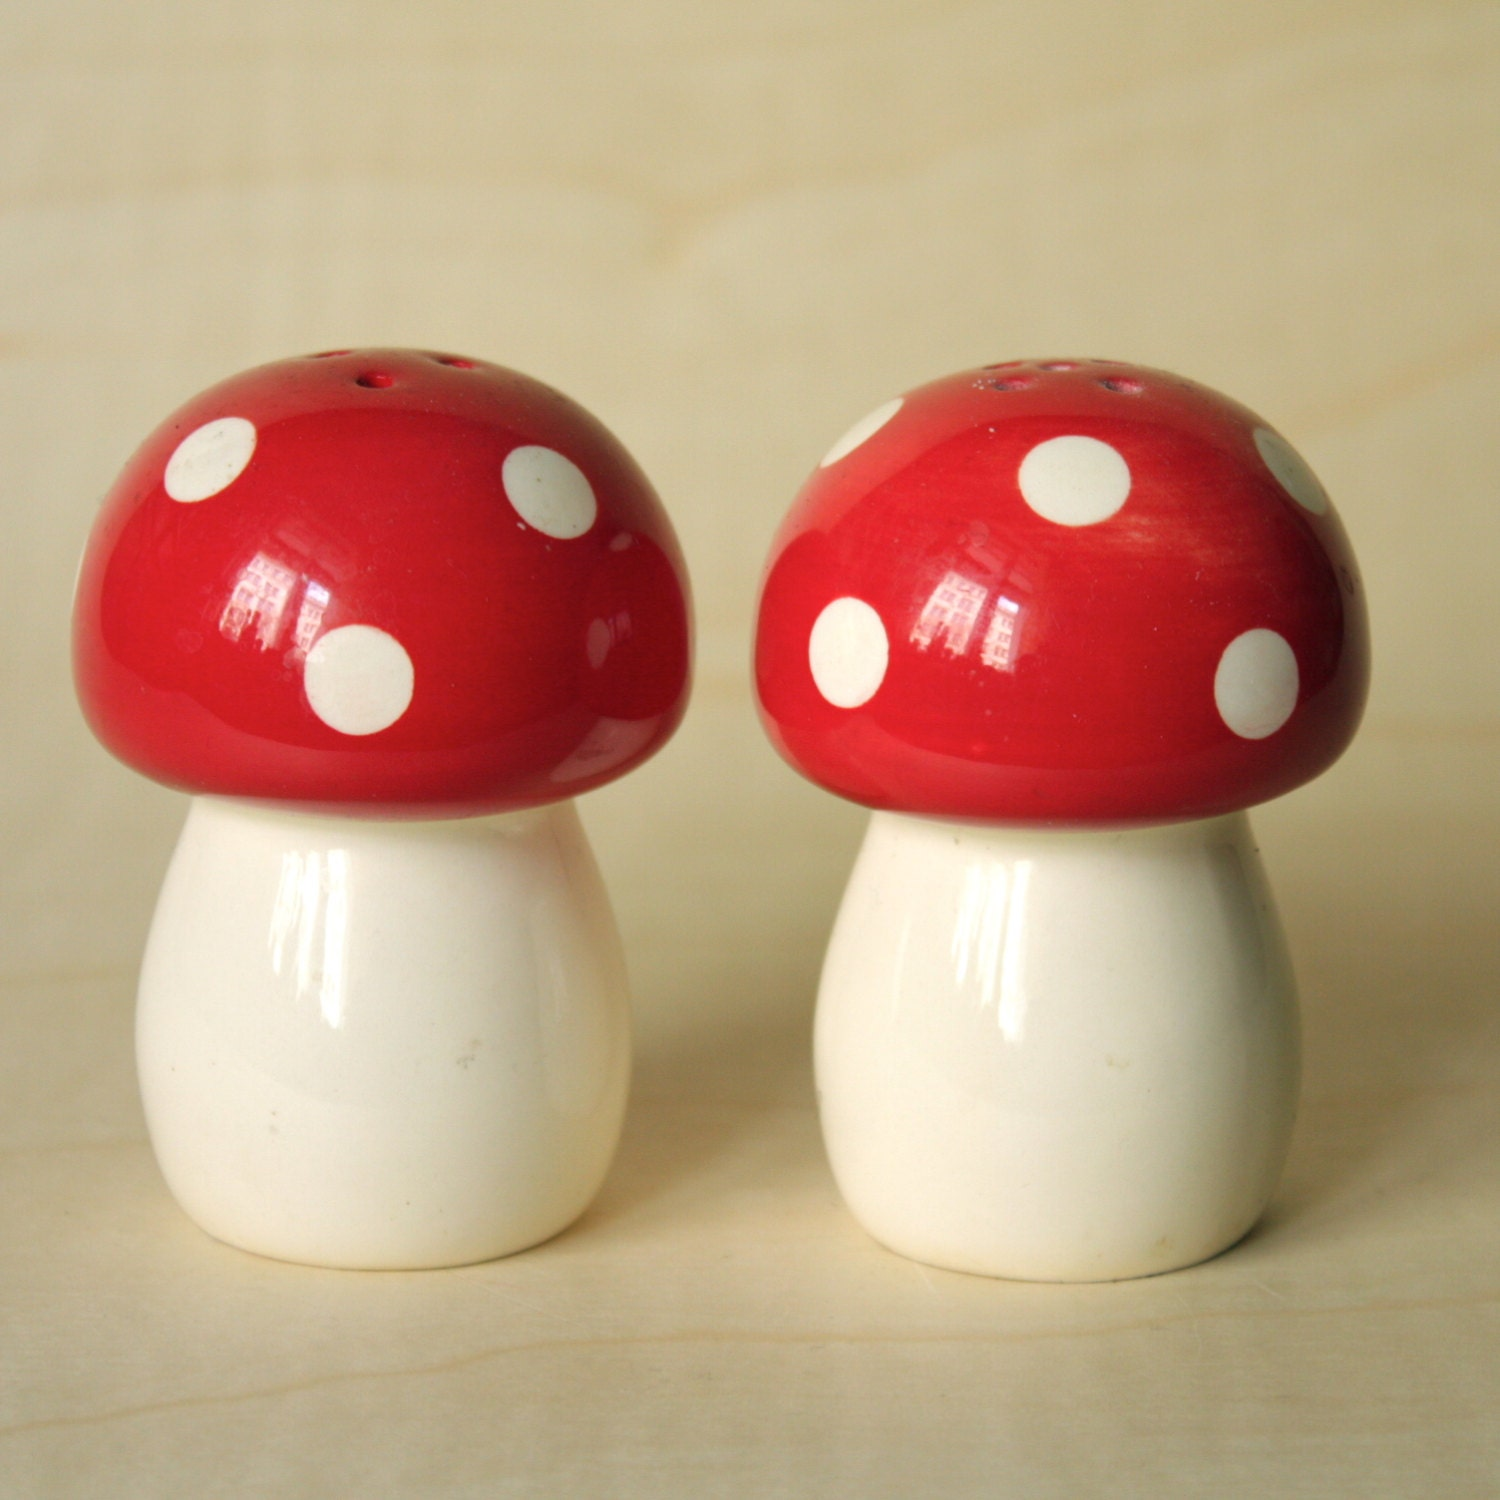 Cute Toadstool Salt And Pepper Shakers By Gogoberlinette